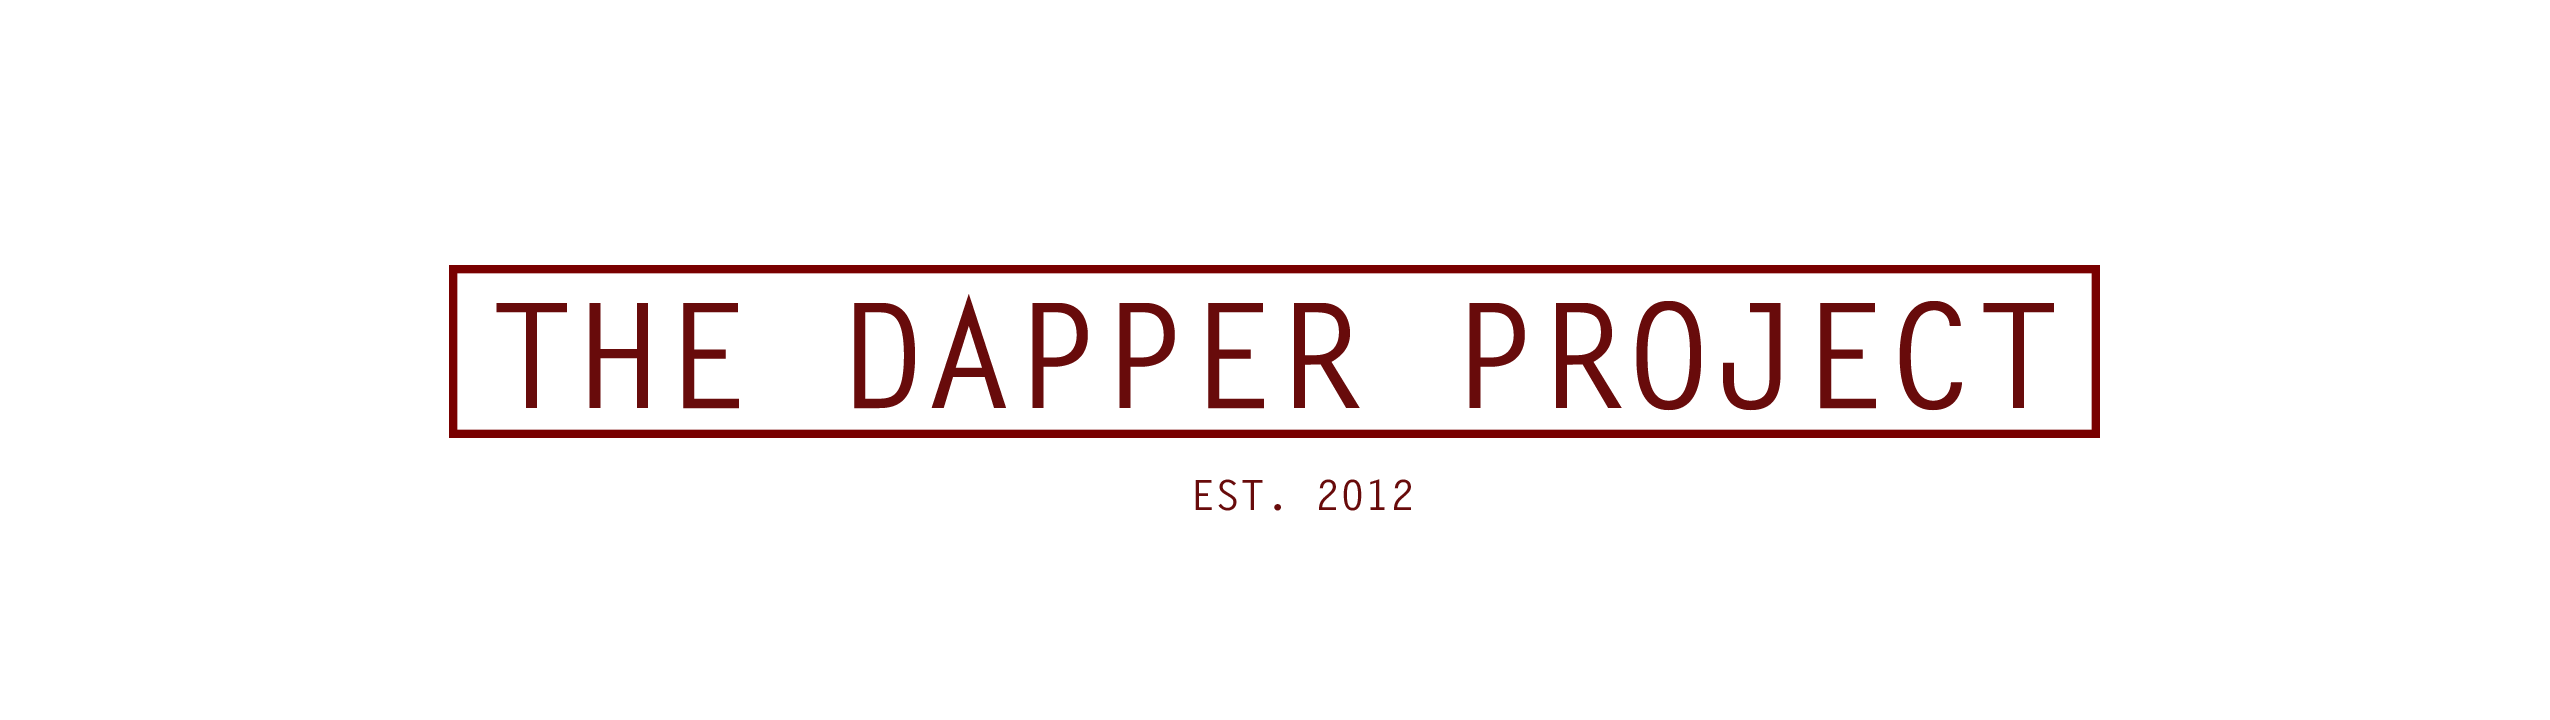 The Dapper Project